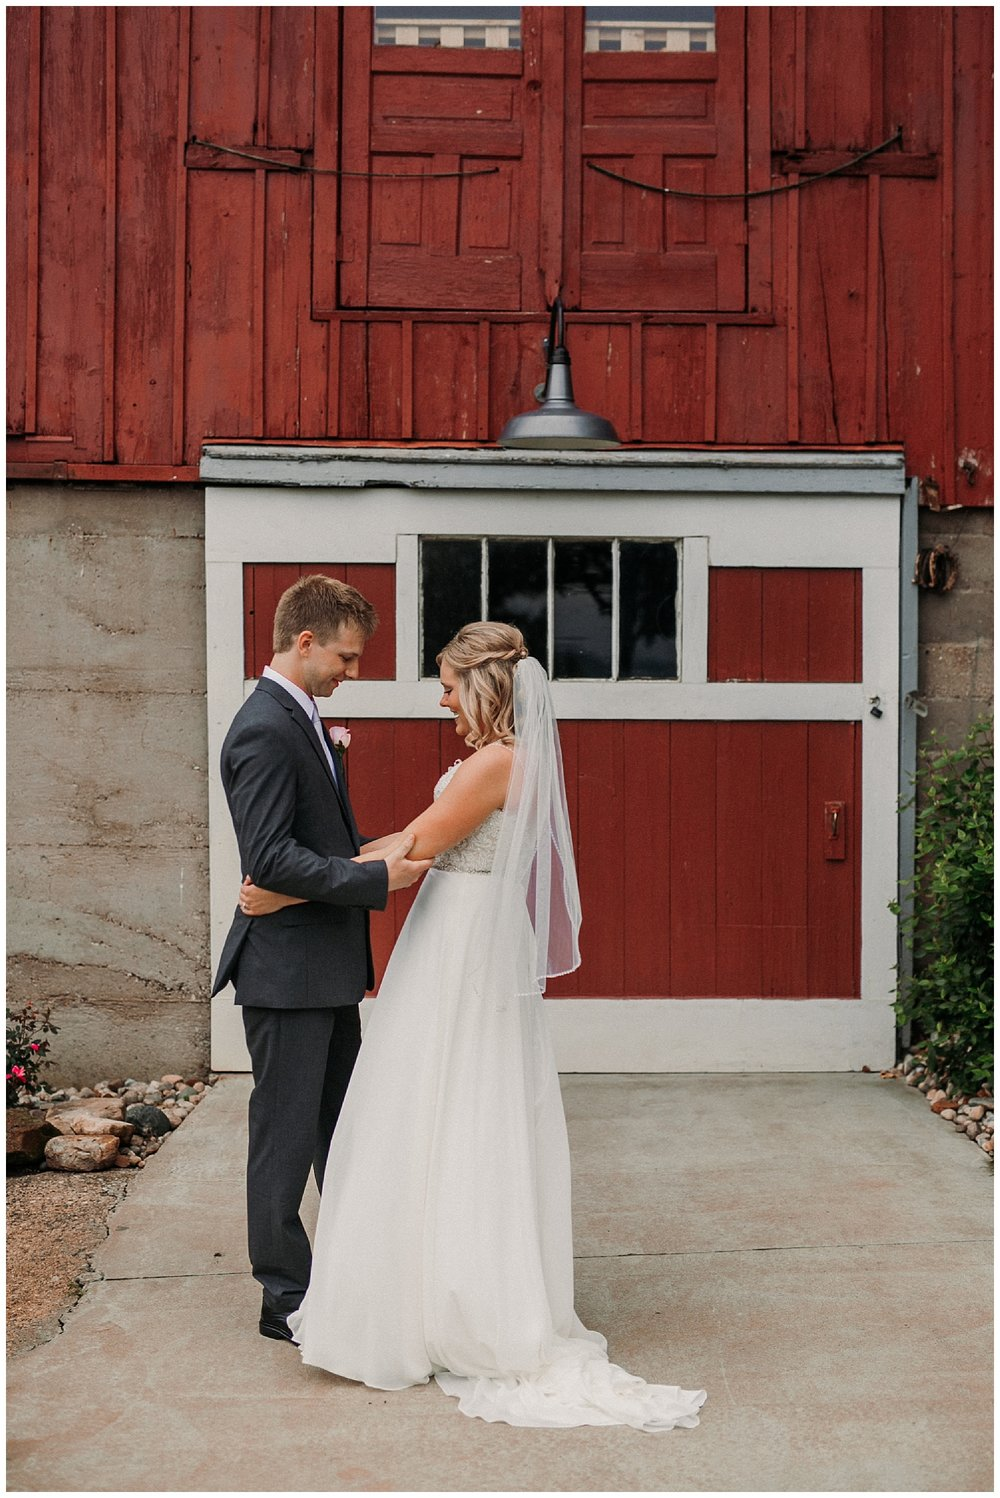 lindybeth photography - persenaire wedding - the old wooden barn-37.jpg